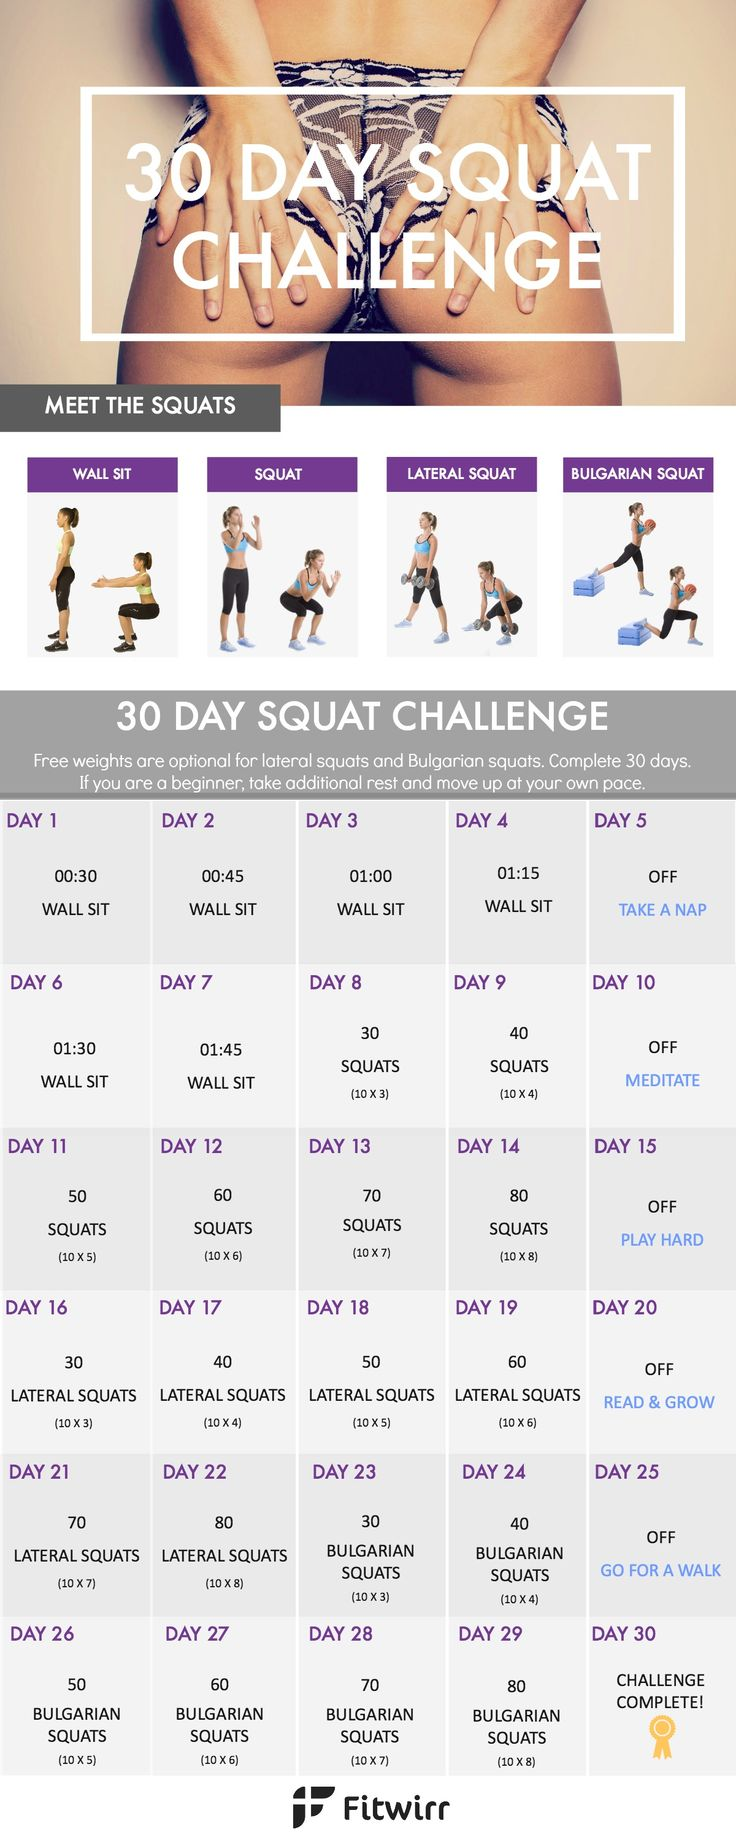 30 Day Squat Challenge. I like a challenge, I may do this ...